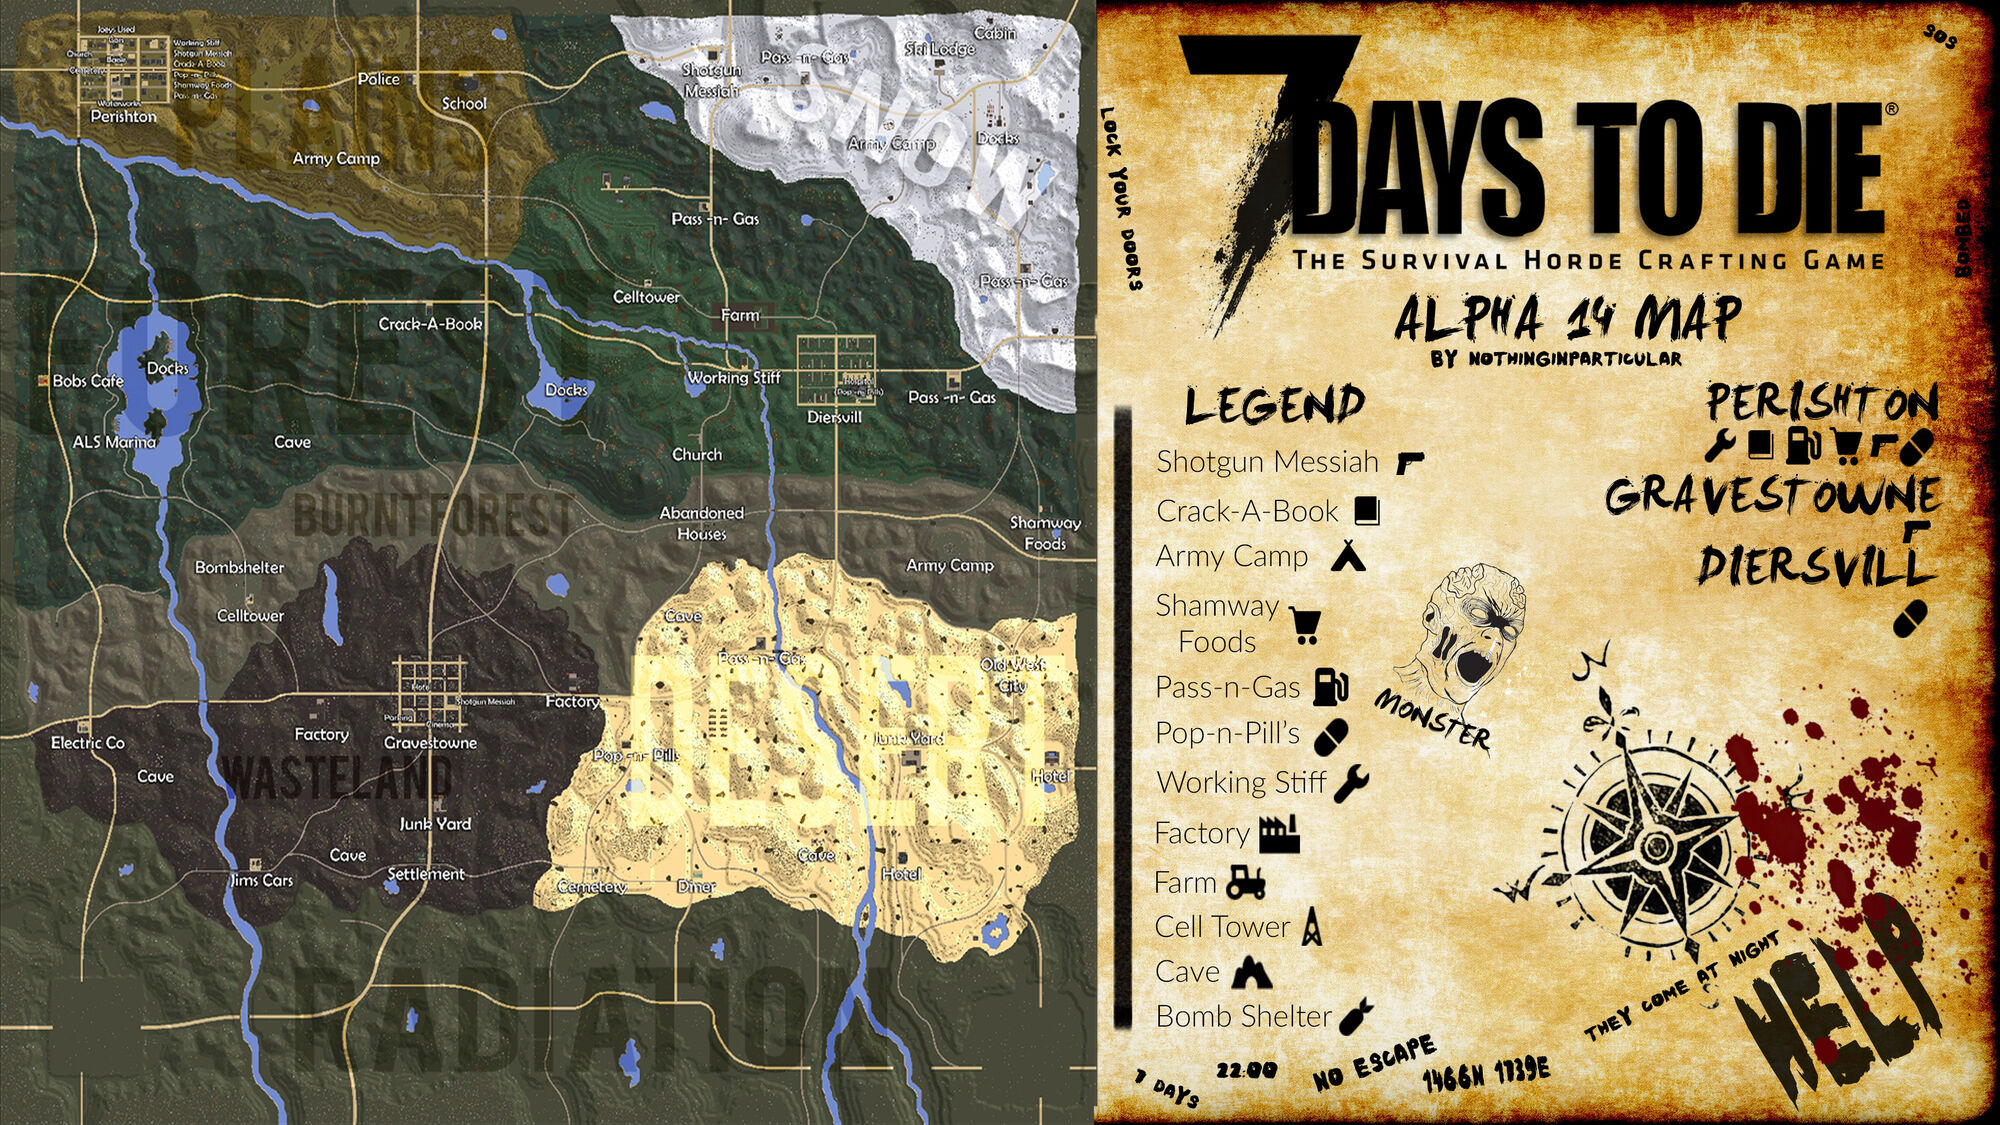 7 days to die ps4 locations